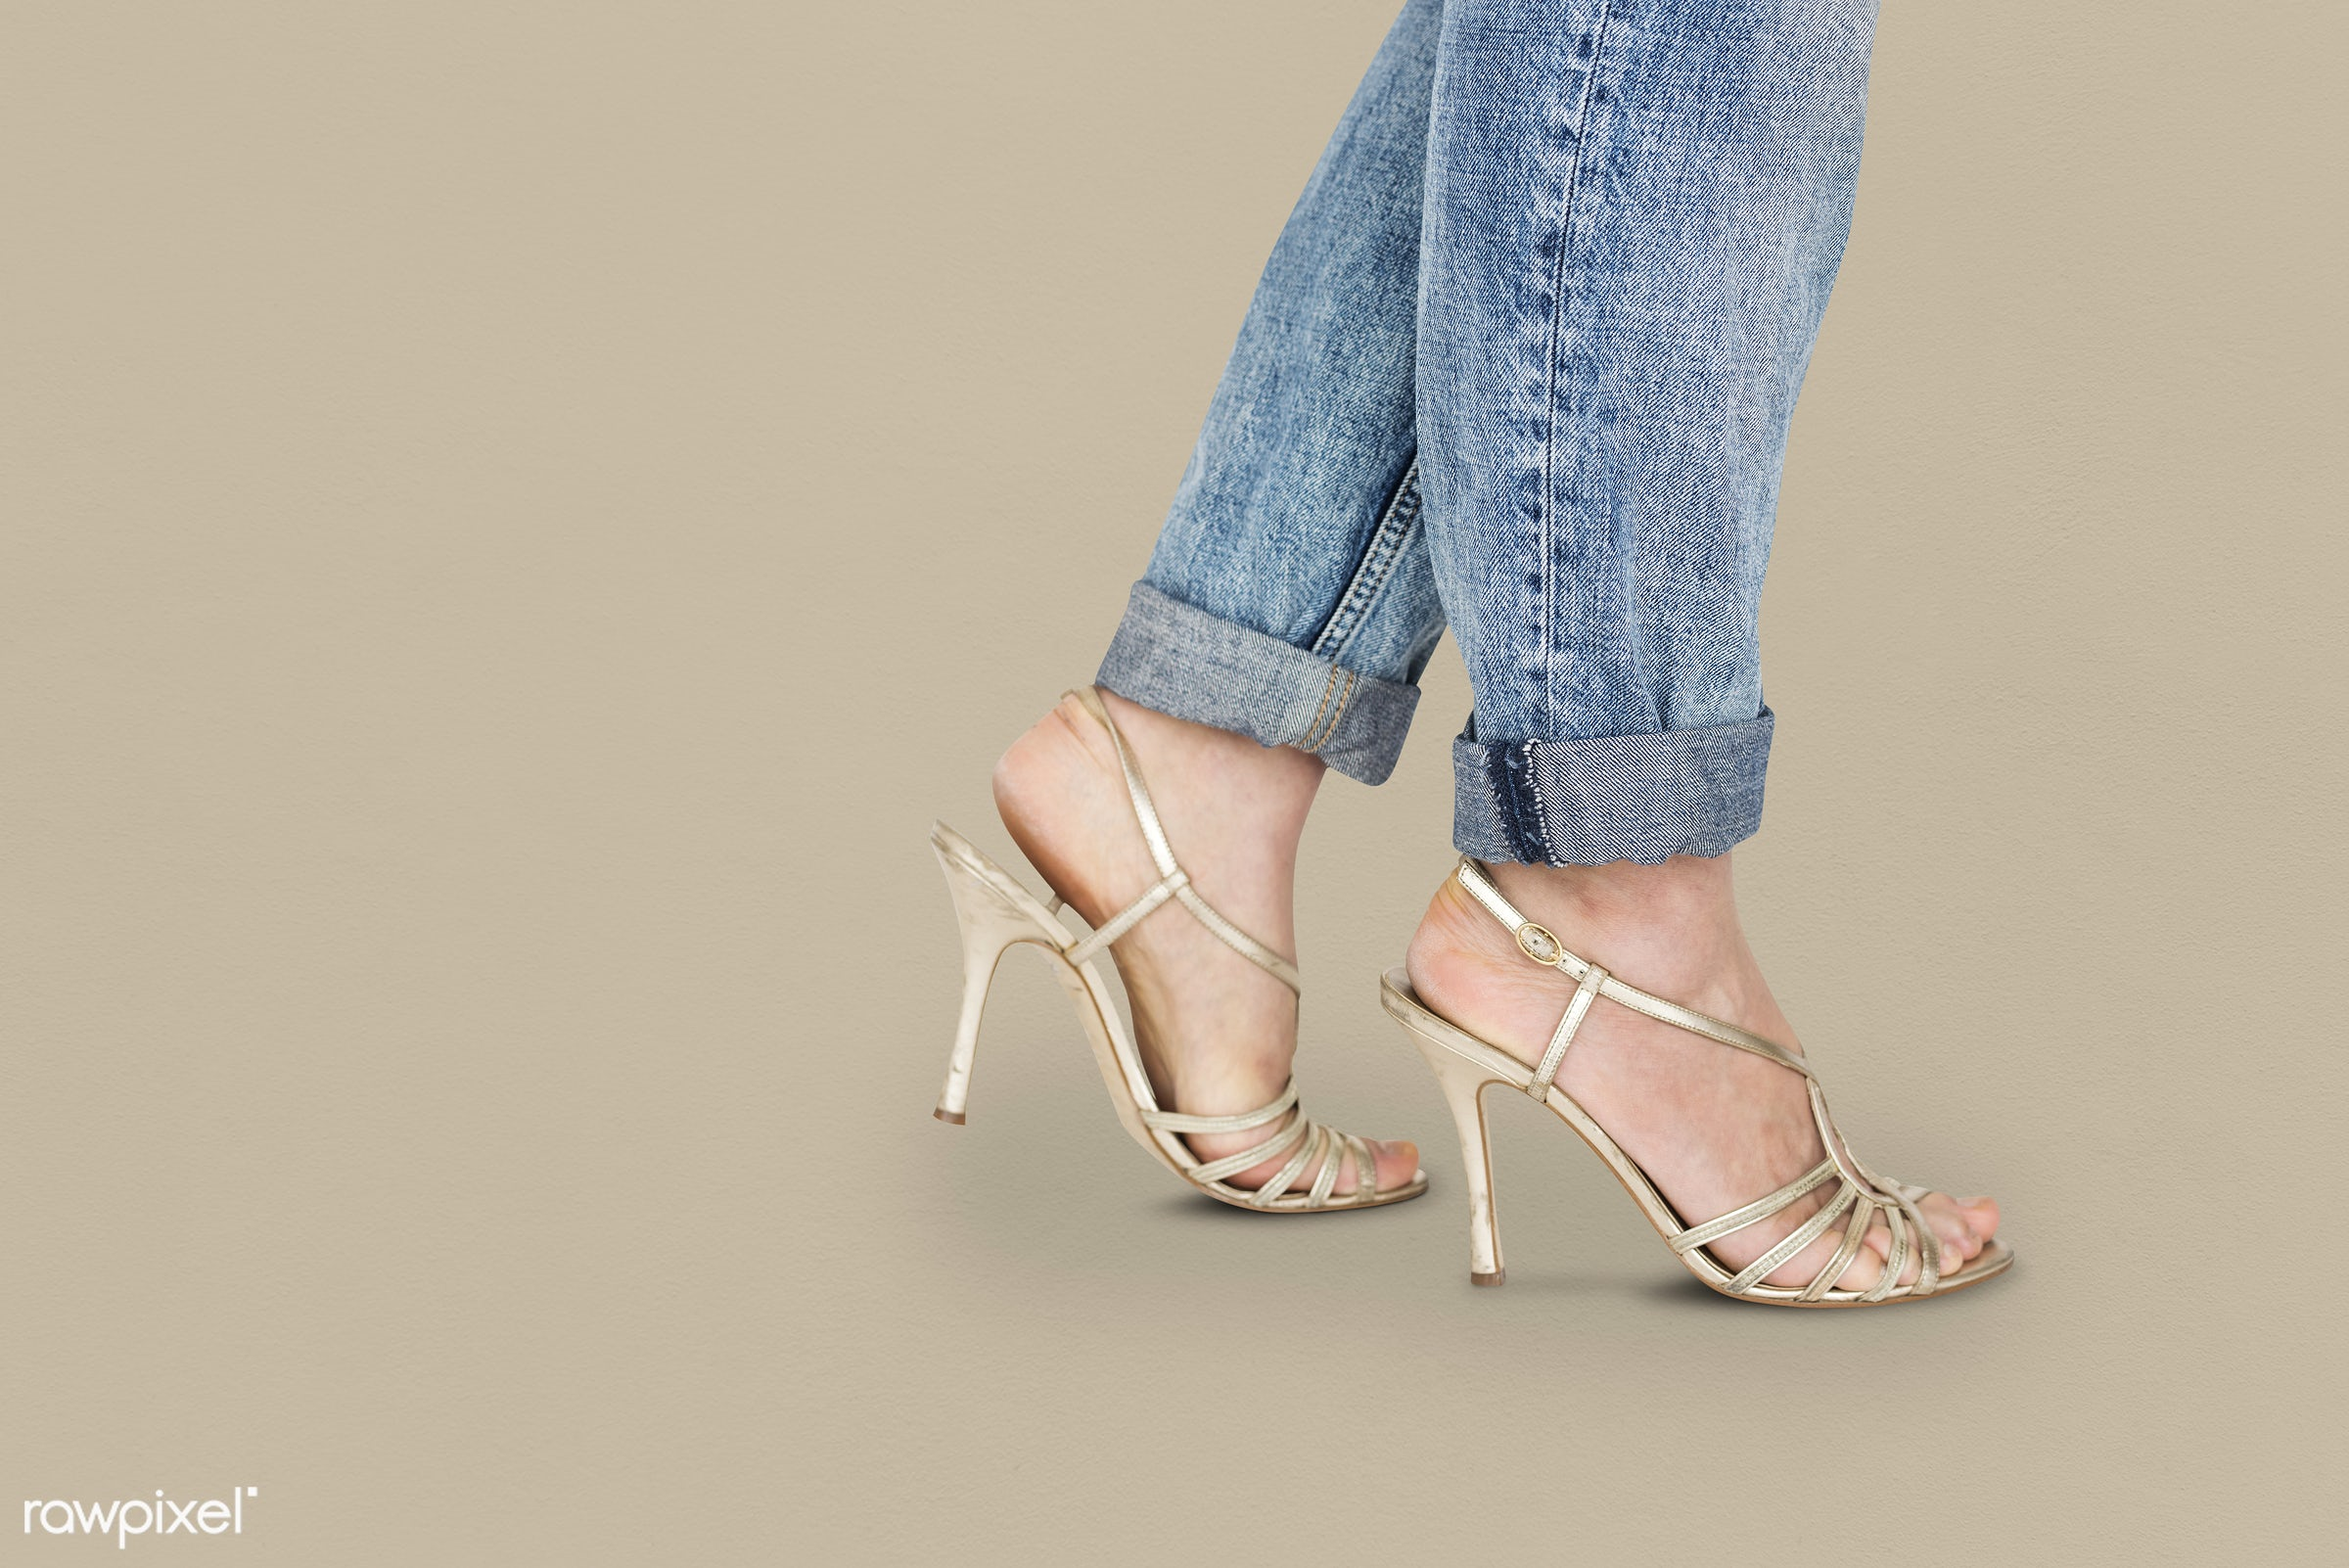 studio, pastel, fashion, model, person, people, race, style, solo, woman, lifestyle, casual, beige, feminism, shoes,...